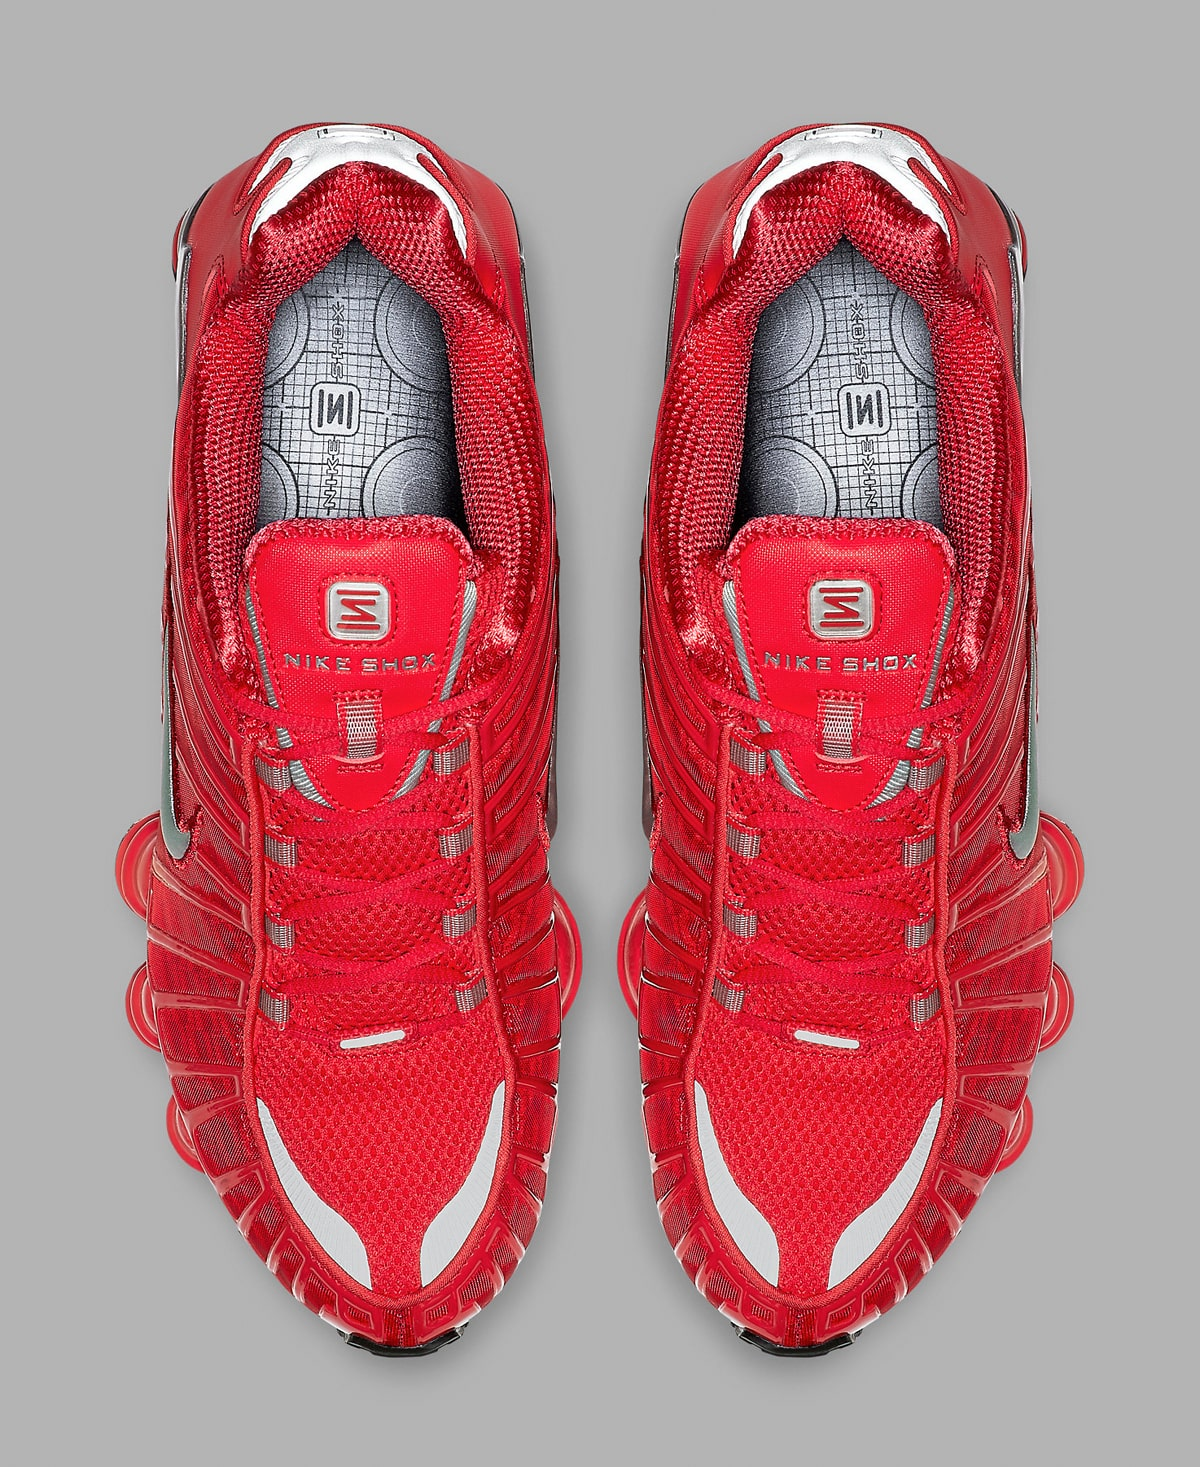 65ed722f6d37 The Nike Shox Total is Making a Comeback in 2019 - HOUSE OF HEAT ...